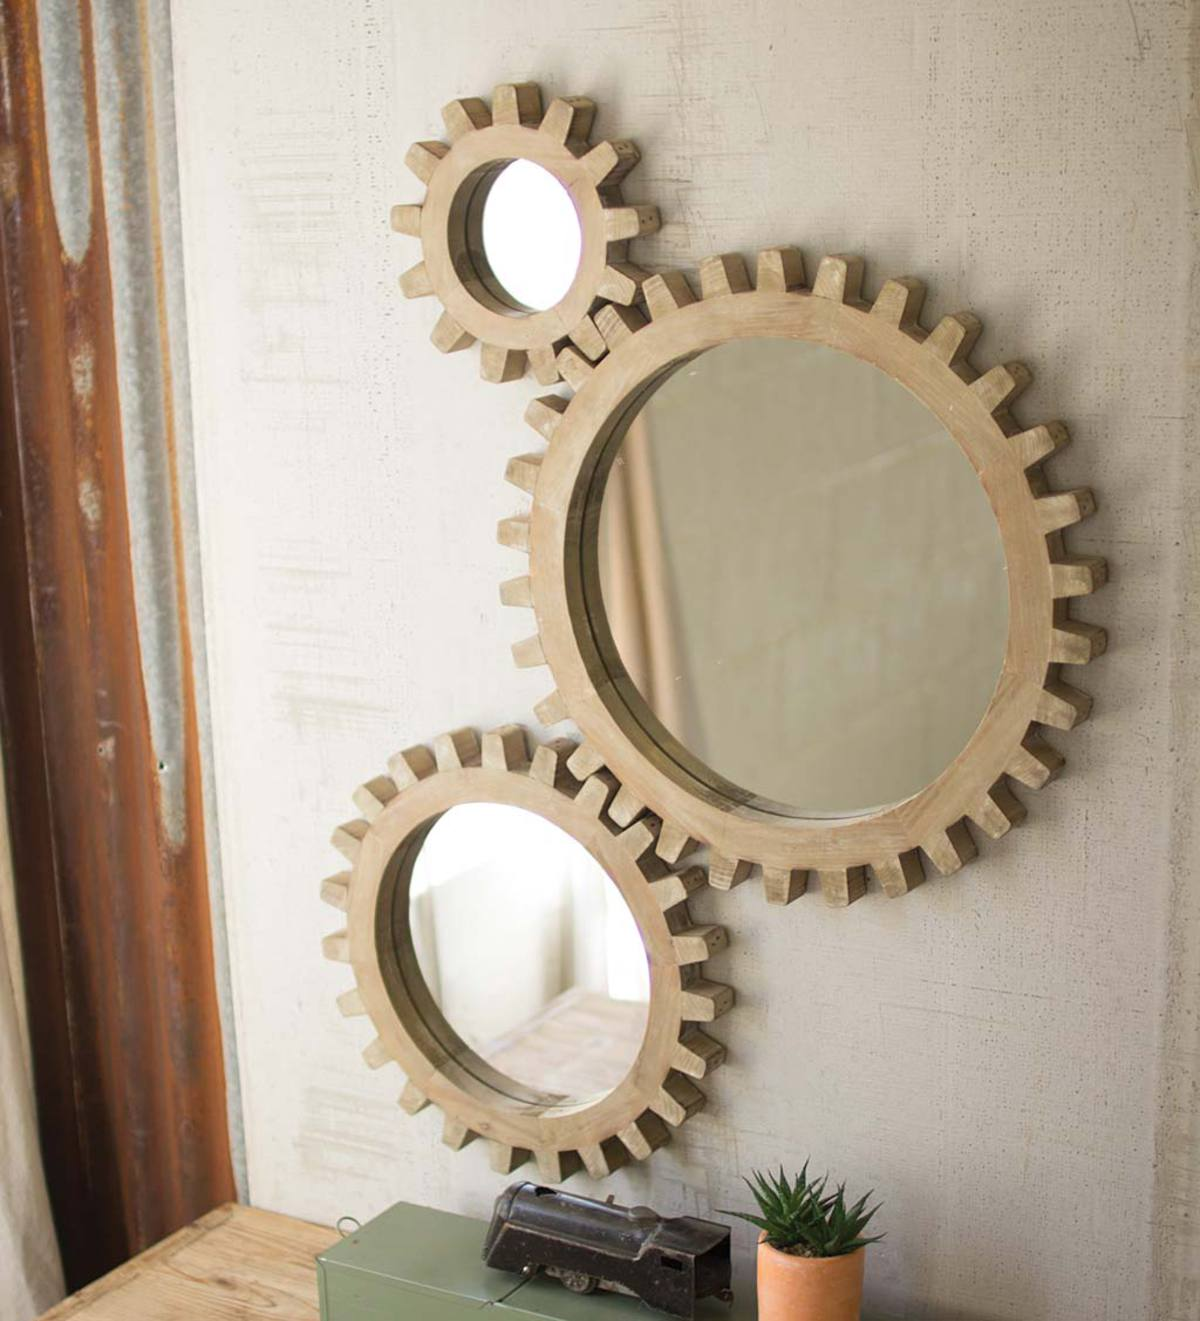 Wooden Gear-Shaped Mirrors, Set of 3